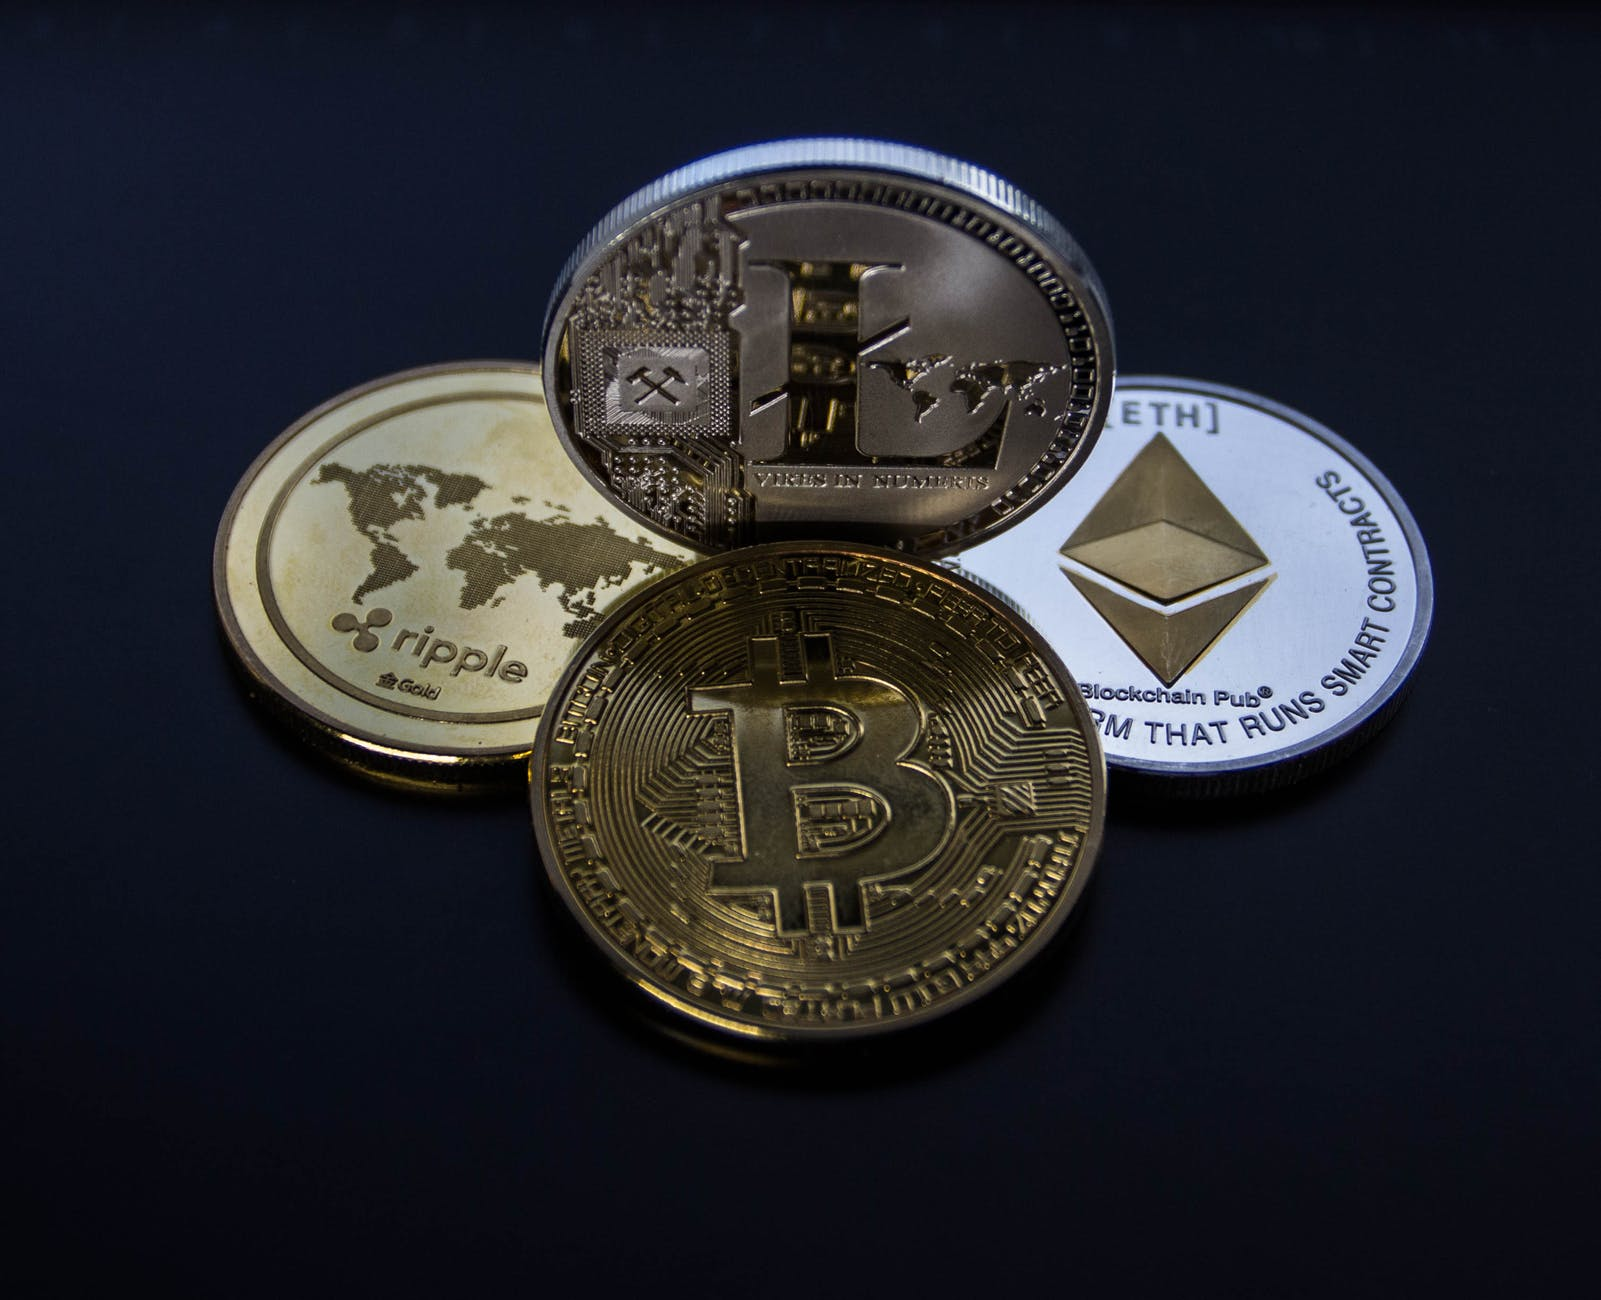 Stellar Lumens (XLM) and Ripple (XRP) leads cryptocurrency rally